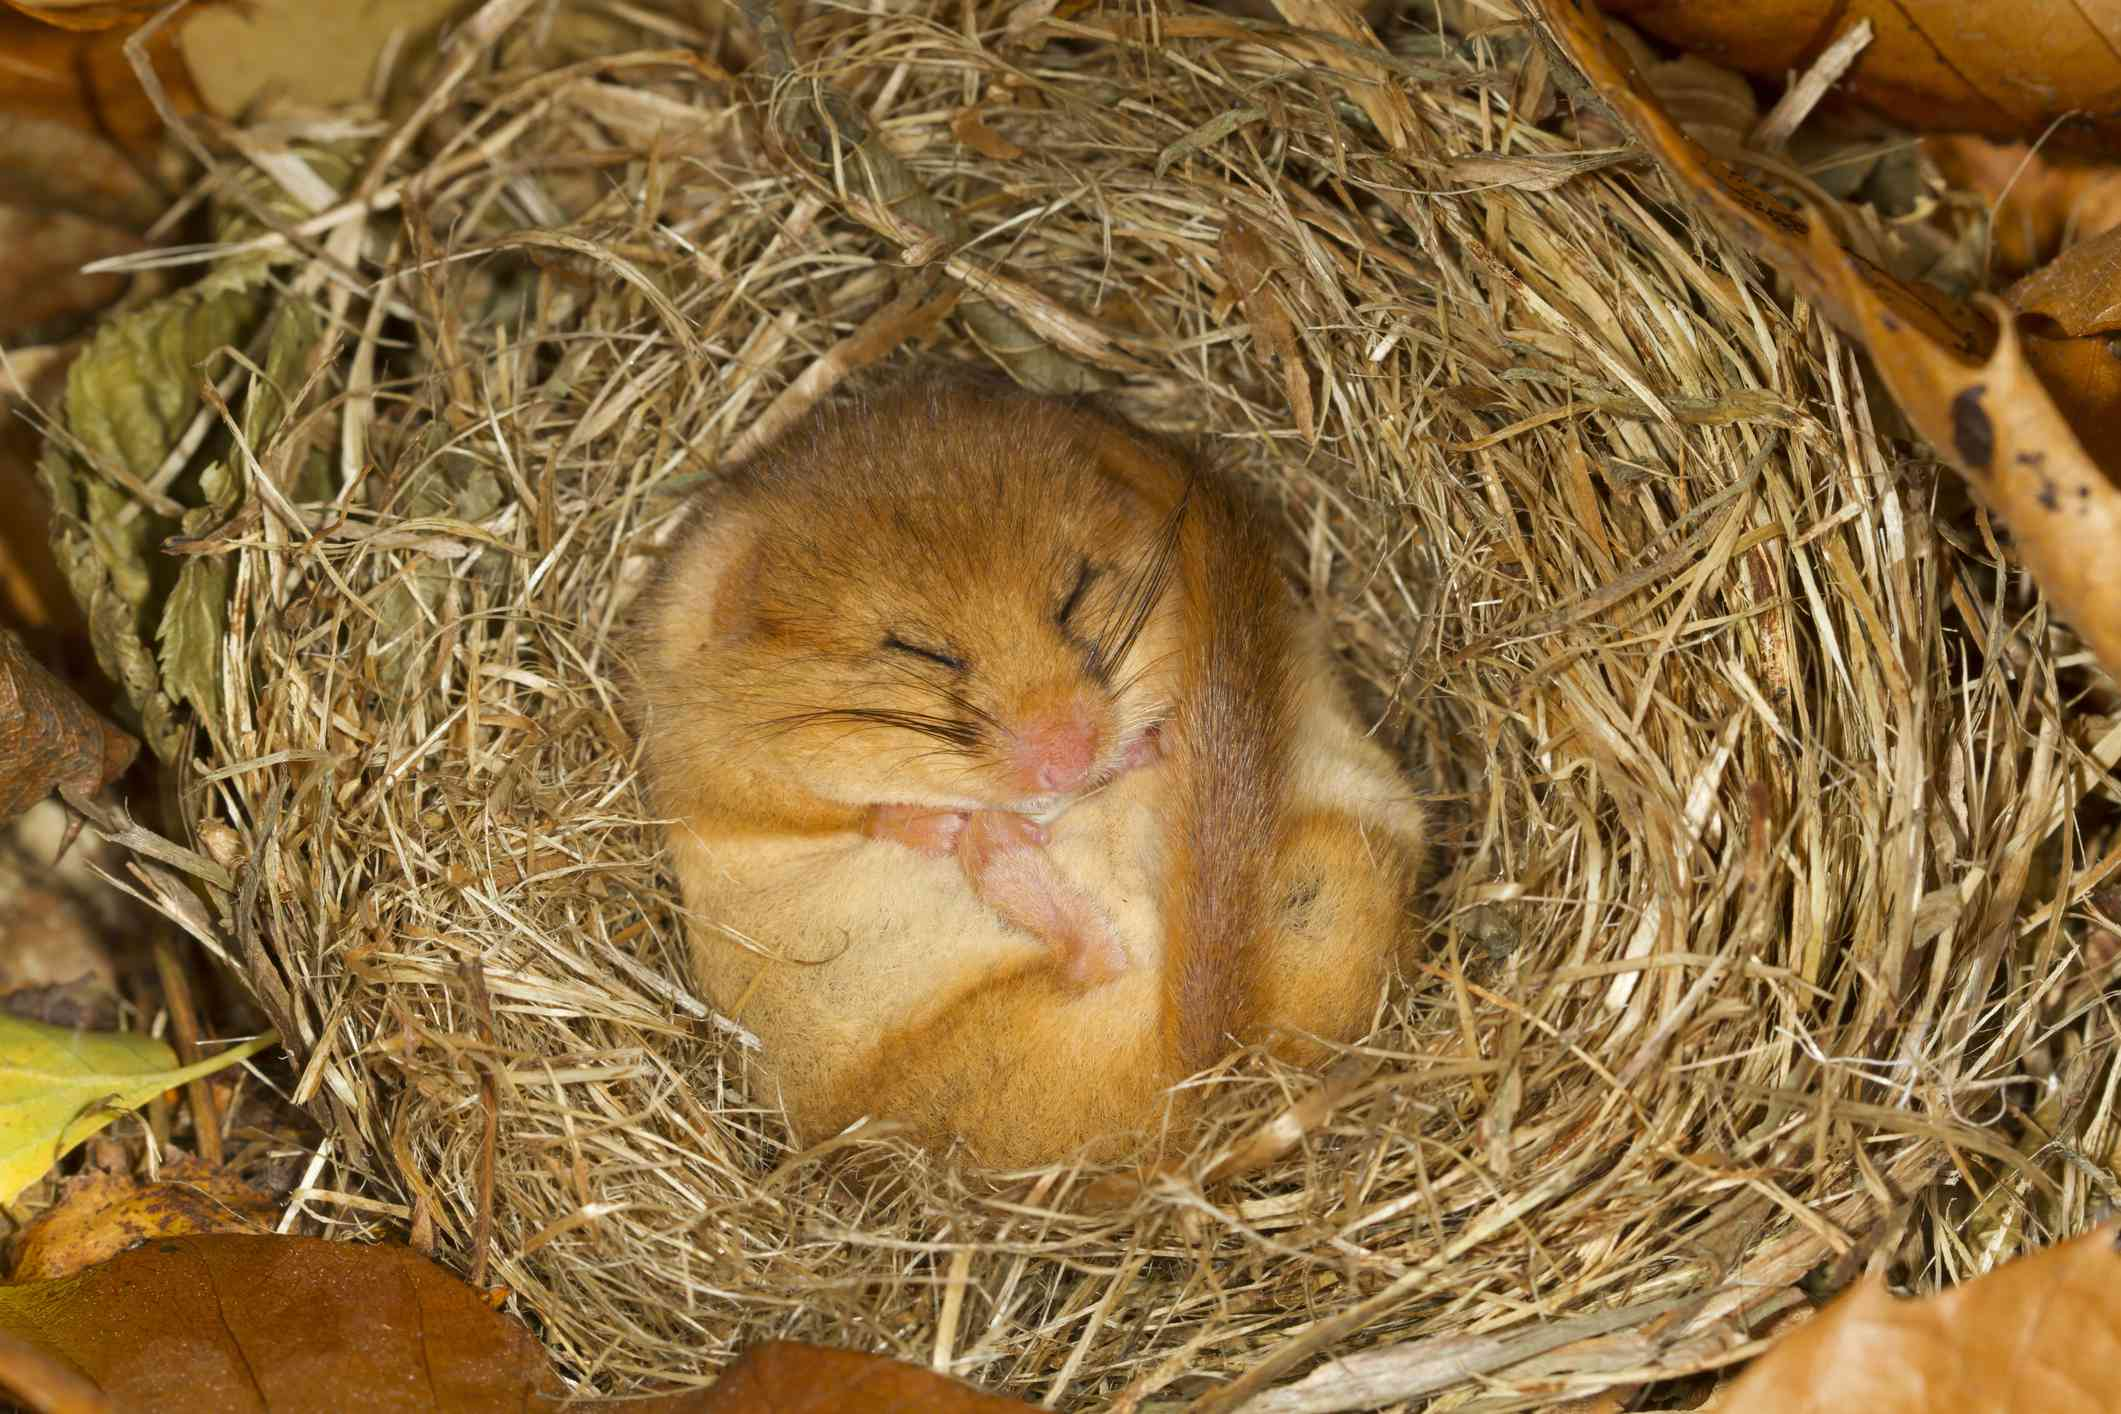 dormouse asleep in a nest on a bed of leaves